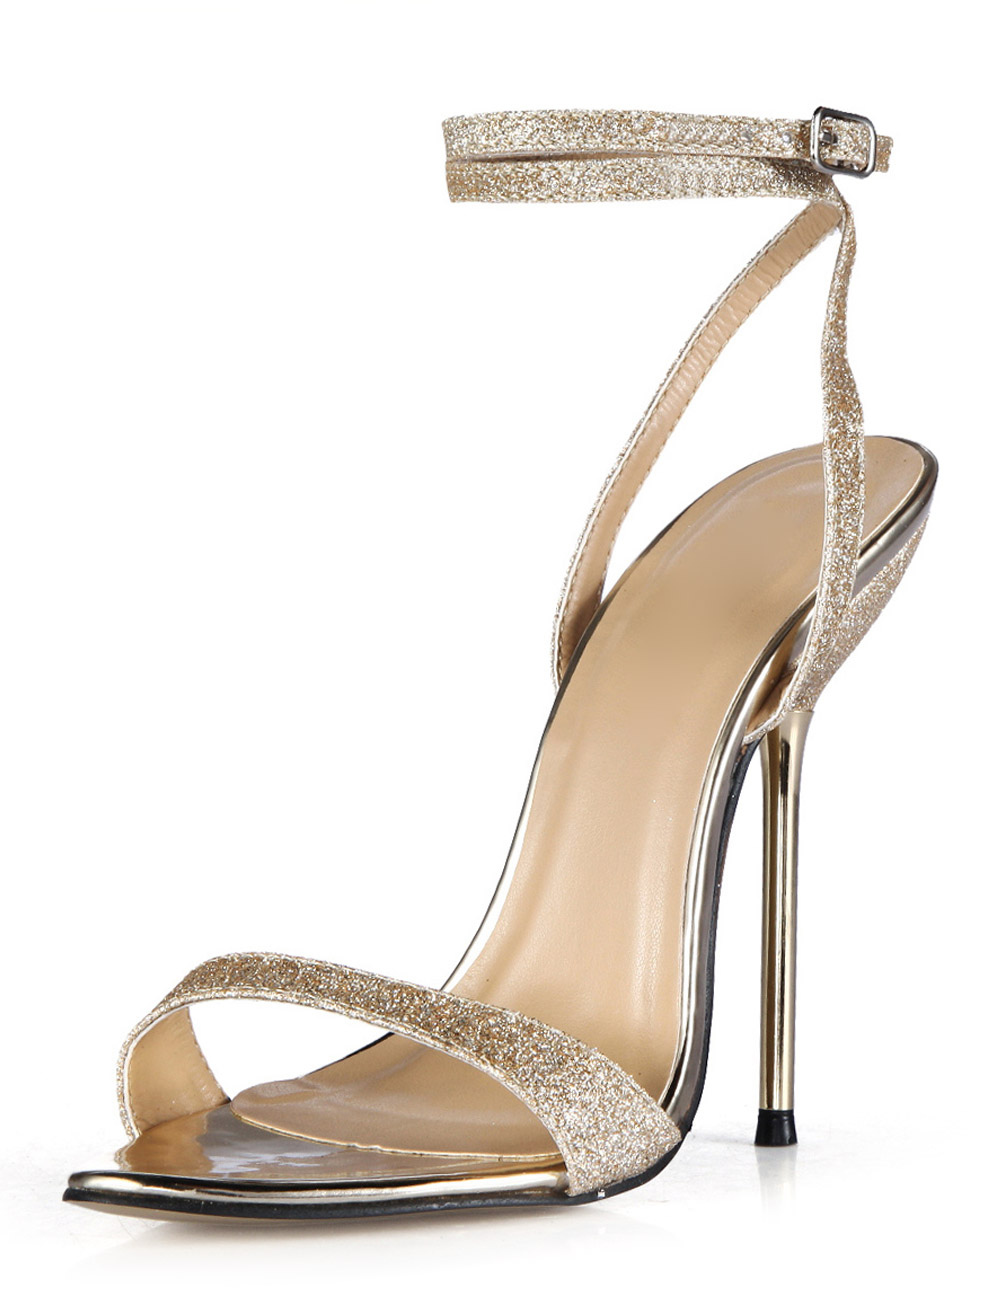 Women Gold Sandals High Heel Sandals Sequined Open Toe Ankle Strap Dress Shoes